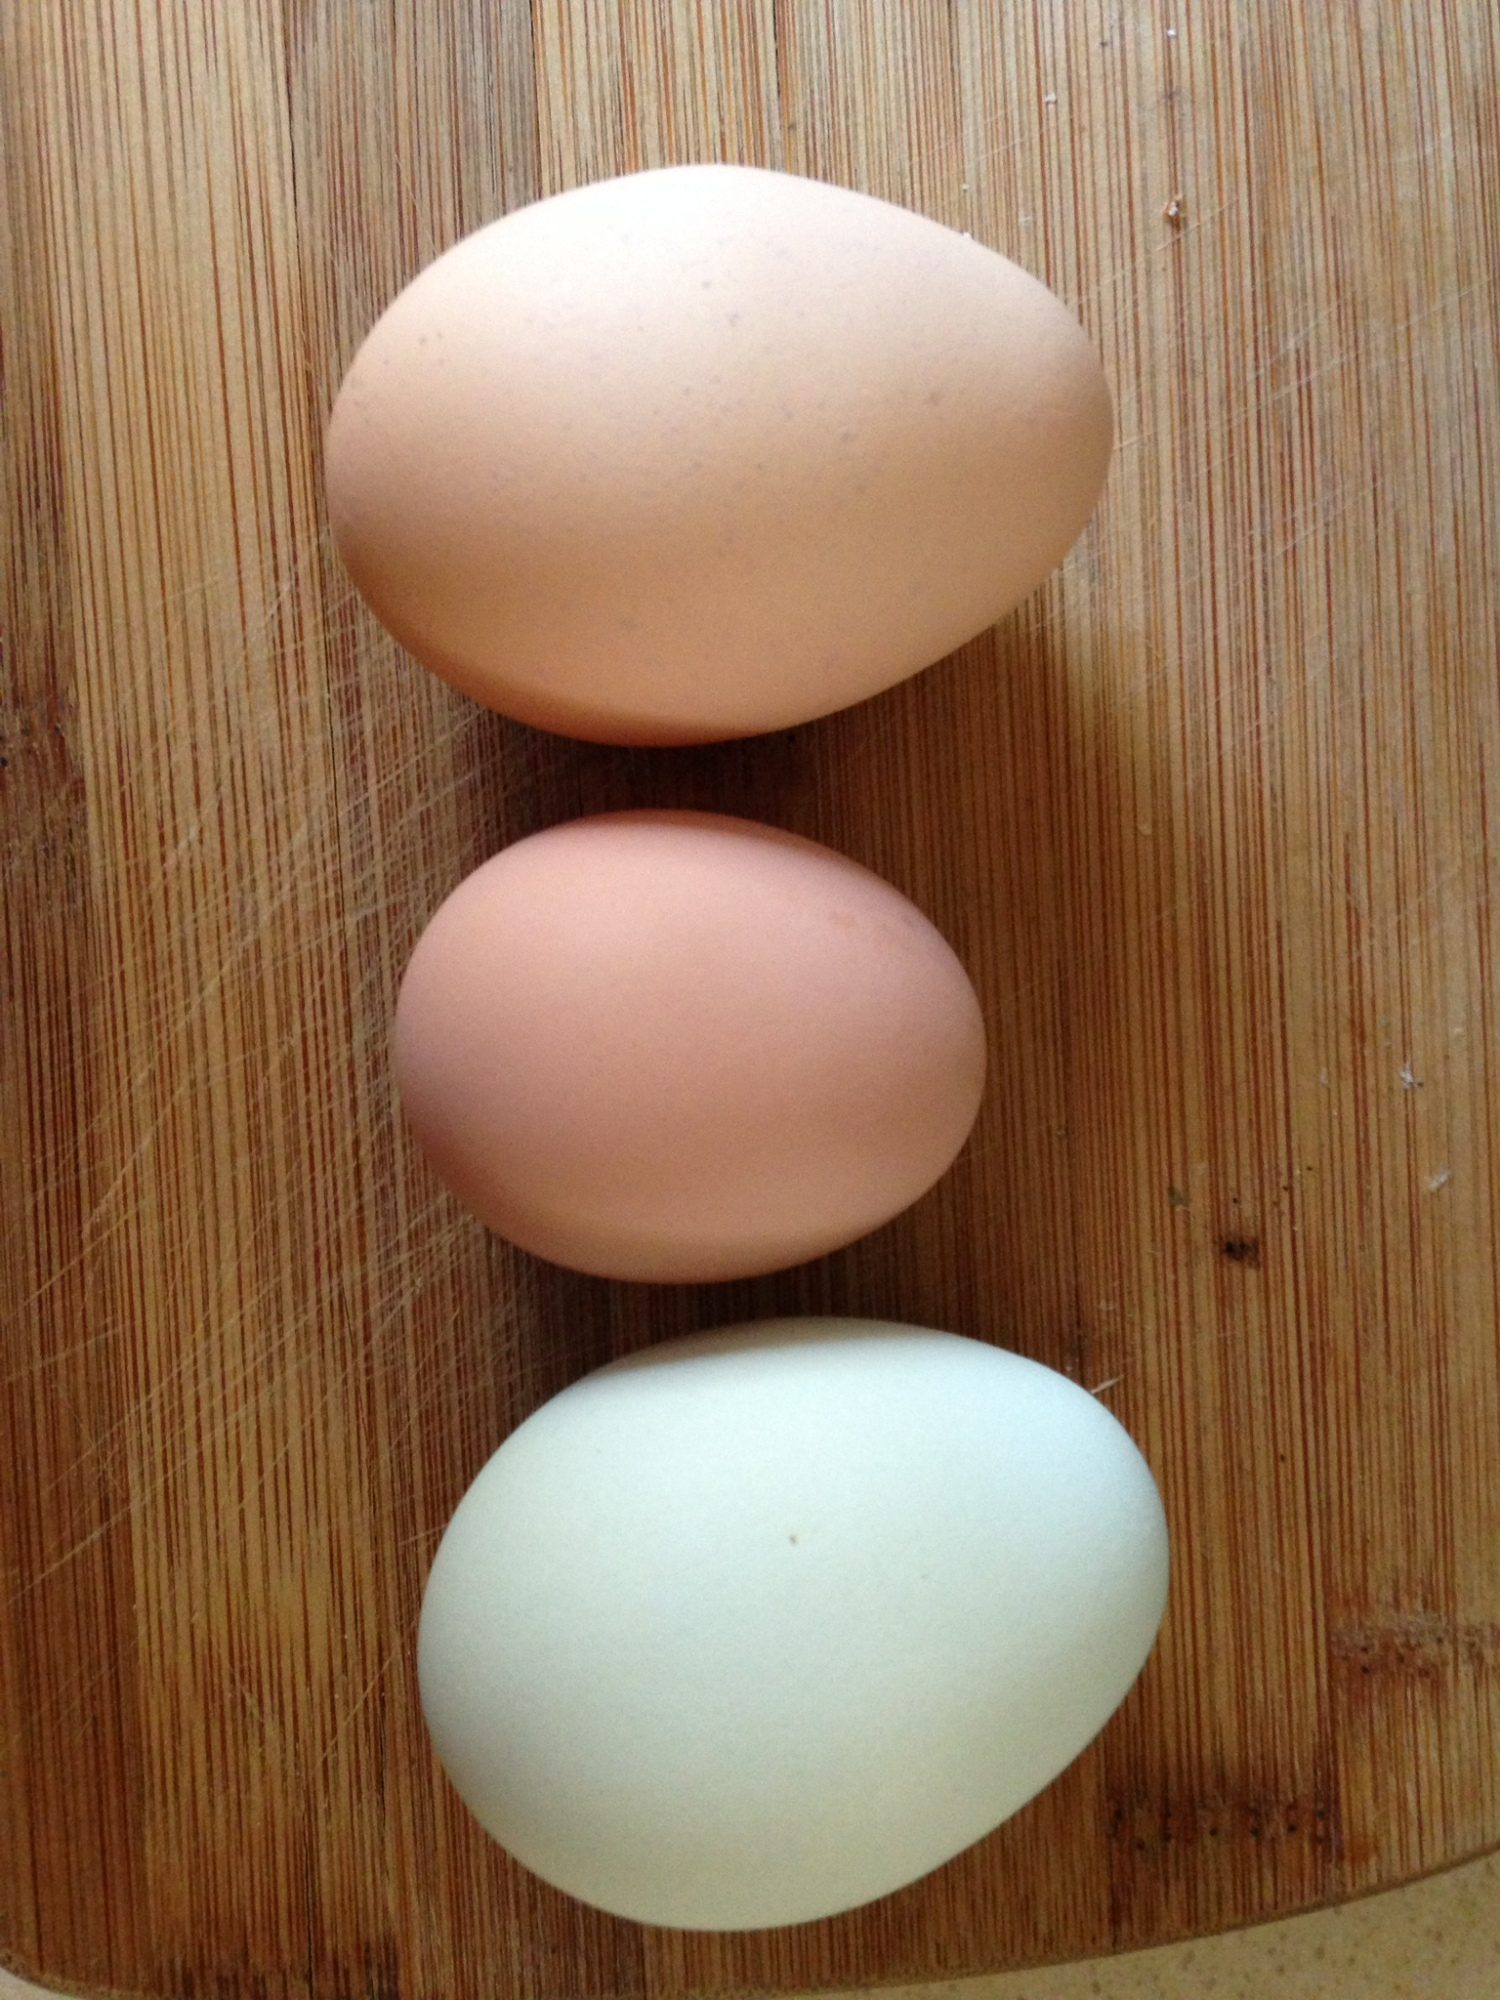 First Pullett egg from our flock hatch, they are 22 weeks now.